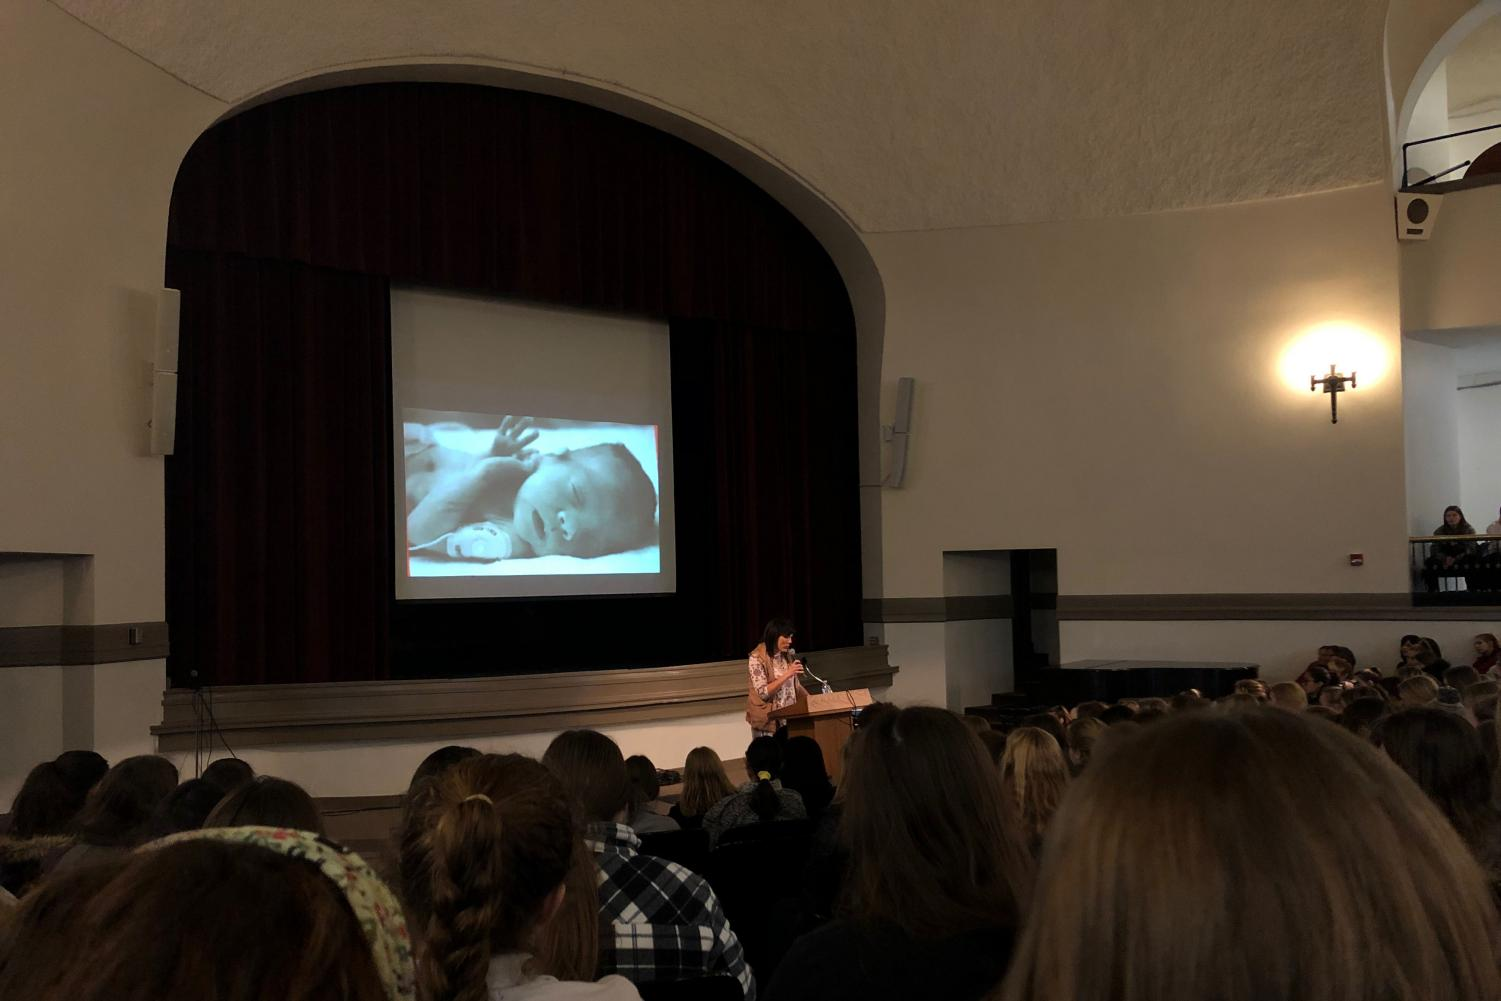 Melissa Ohden speaks to STA students and faculty against a backdrop of her as a baby Jan. 28. Ohden is a Catholic convert and speaks on her life experiences of following God's plan and spreading her message. photo by Lily Hart